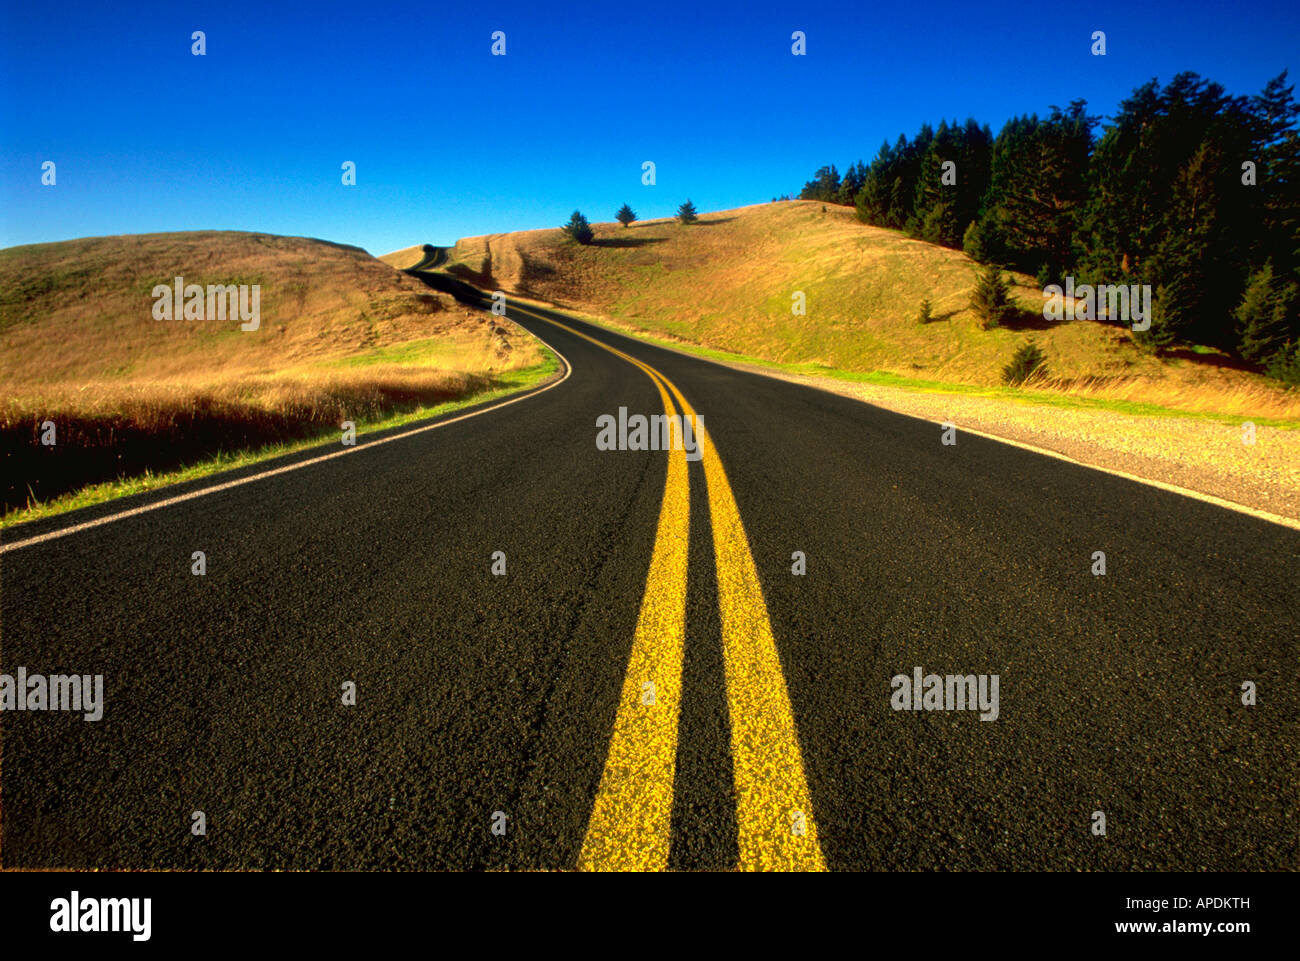 Deserted highway Route 1 California - Stock Image